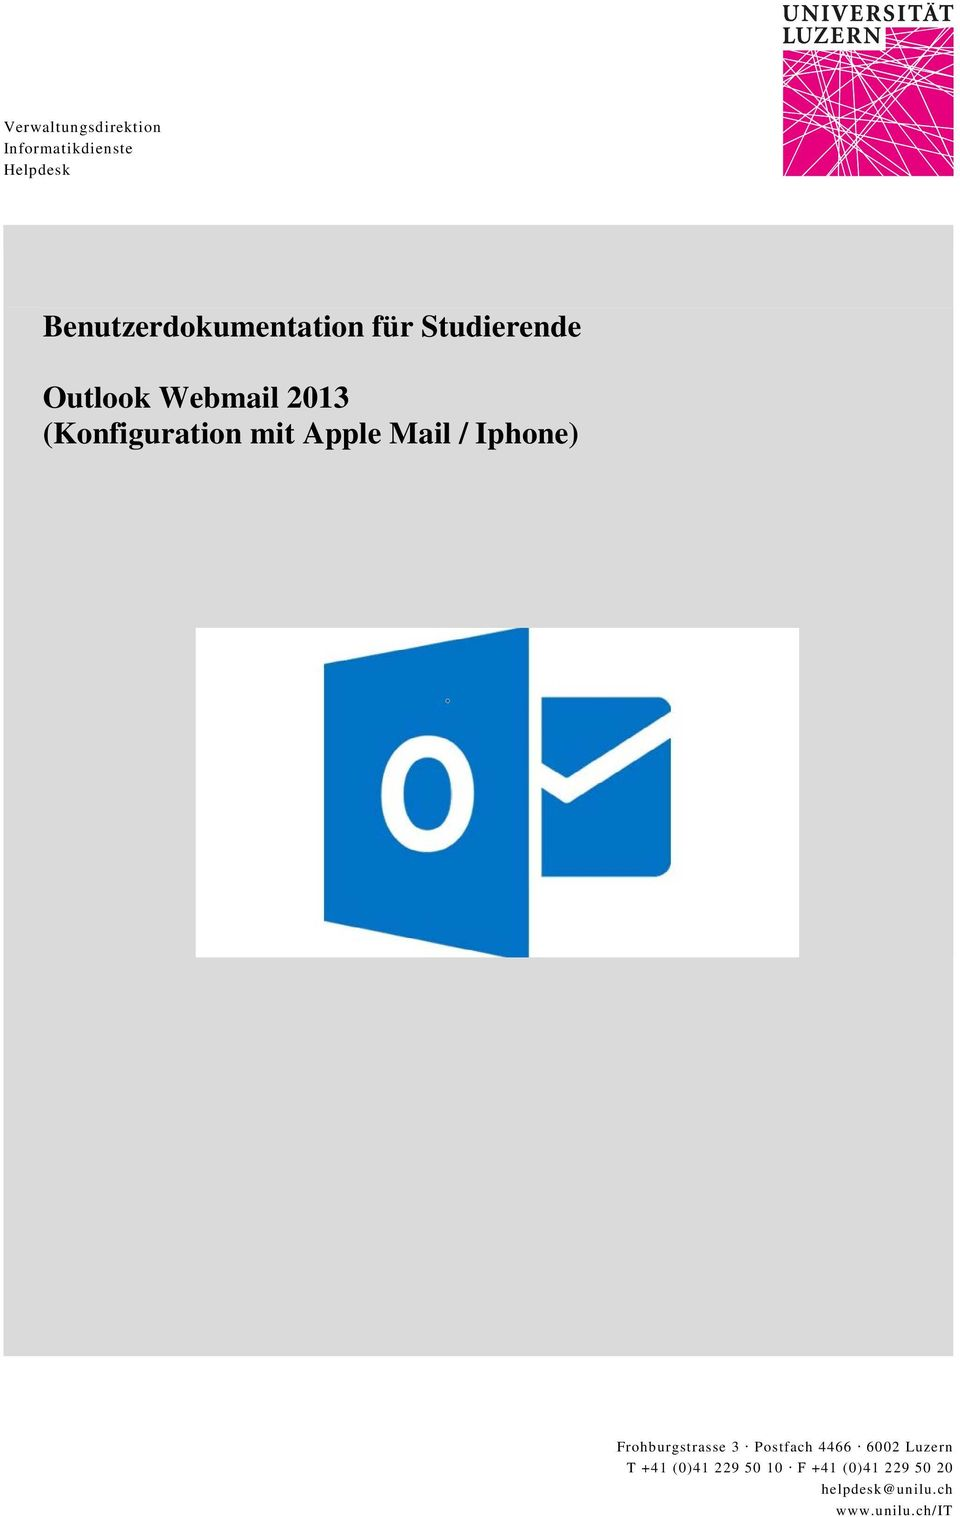 (Konfiguration mit Apple Mail / Iphone) Frohburgstrasse 3 Postfach